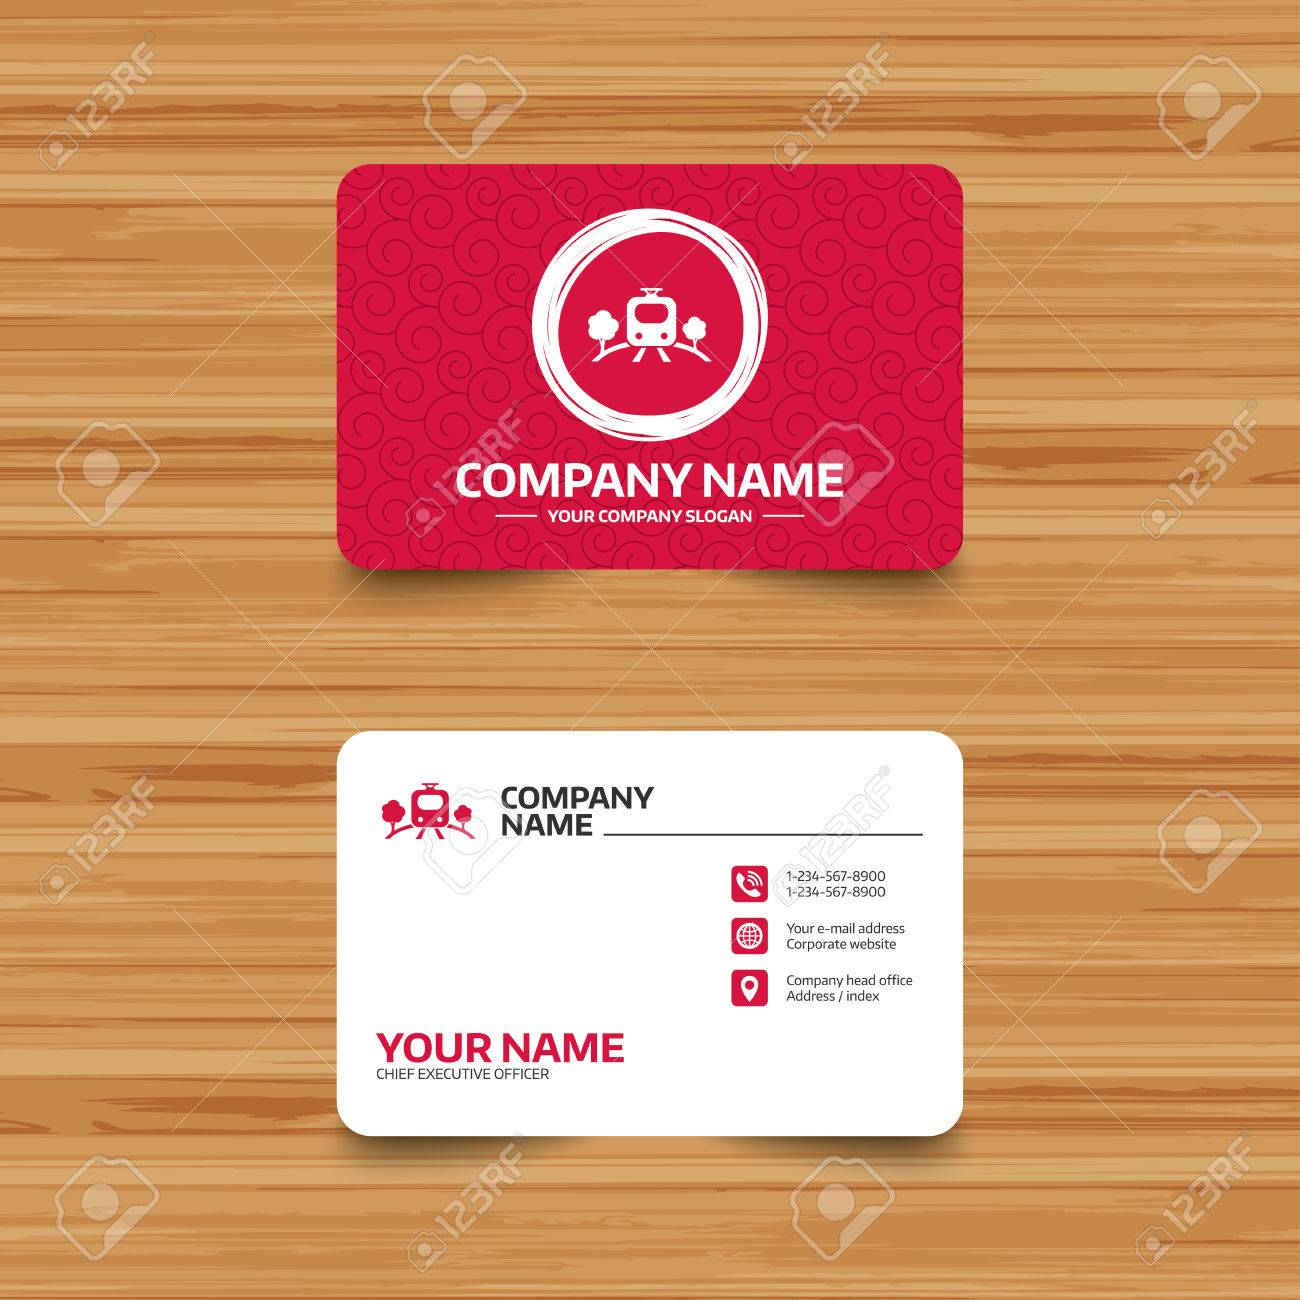 Business card template with texture overground subway sign icon business card template with texture overground subway sign icon metro train symbol phone colourmoves